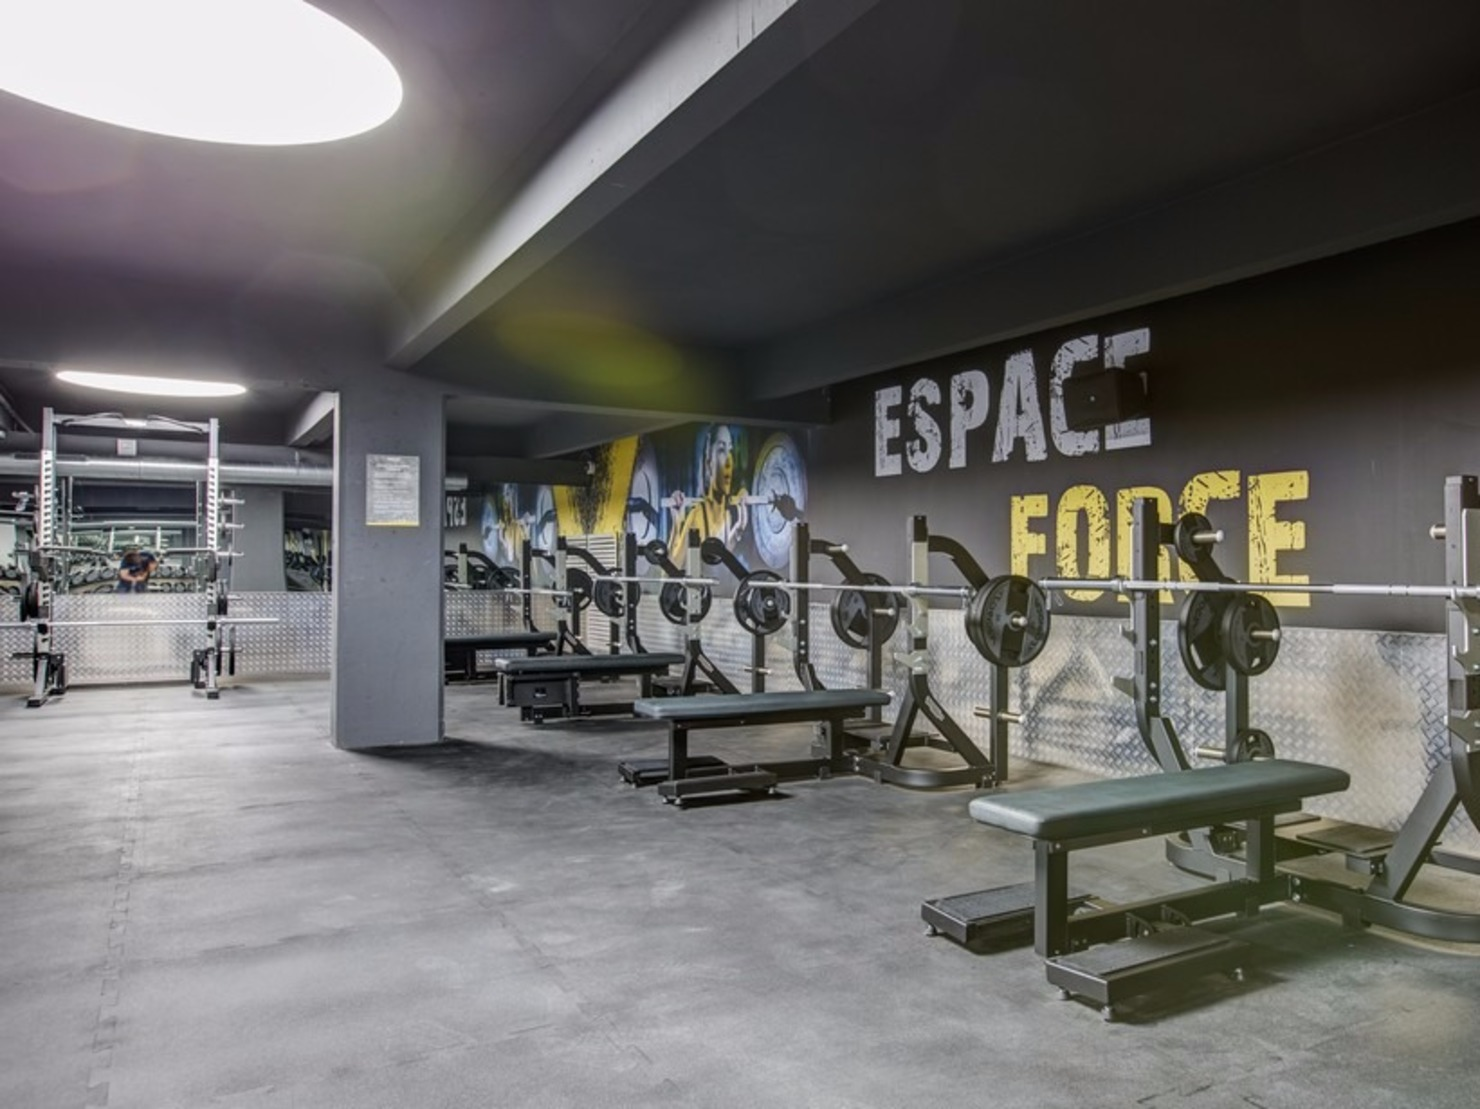 fitness park vitry vitry sur seine tarifs avis horaires essai gratuit. Black Bedroom Furniture Sets. Home Design Ideas